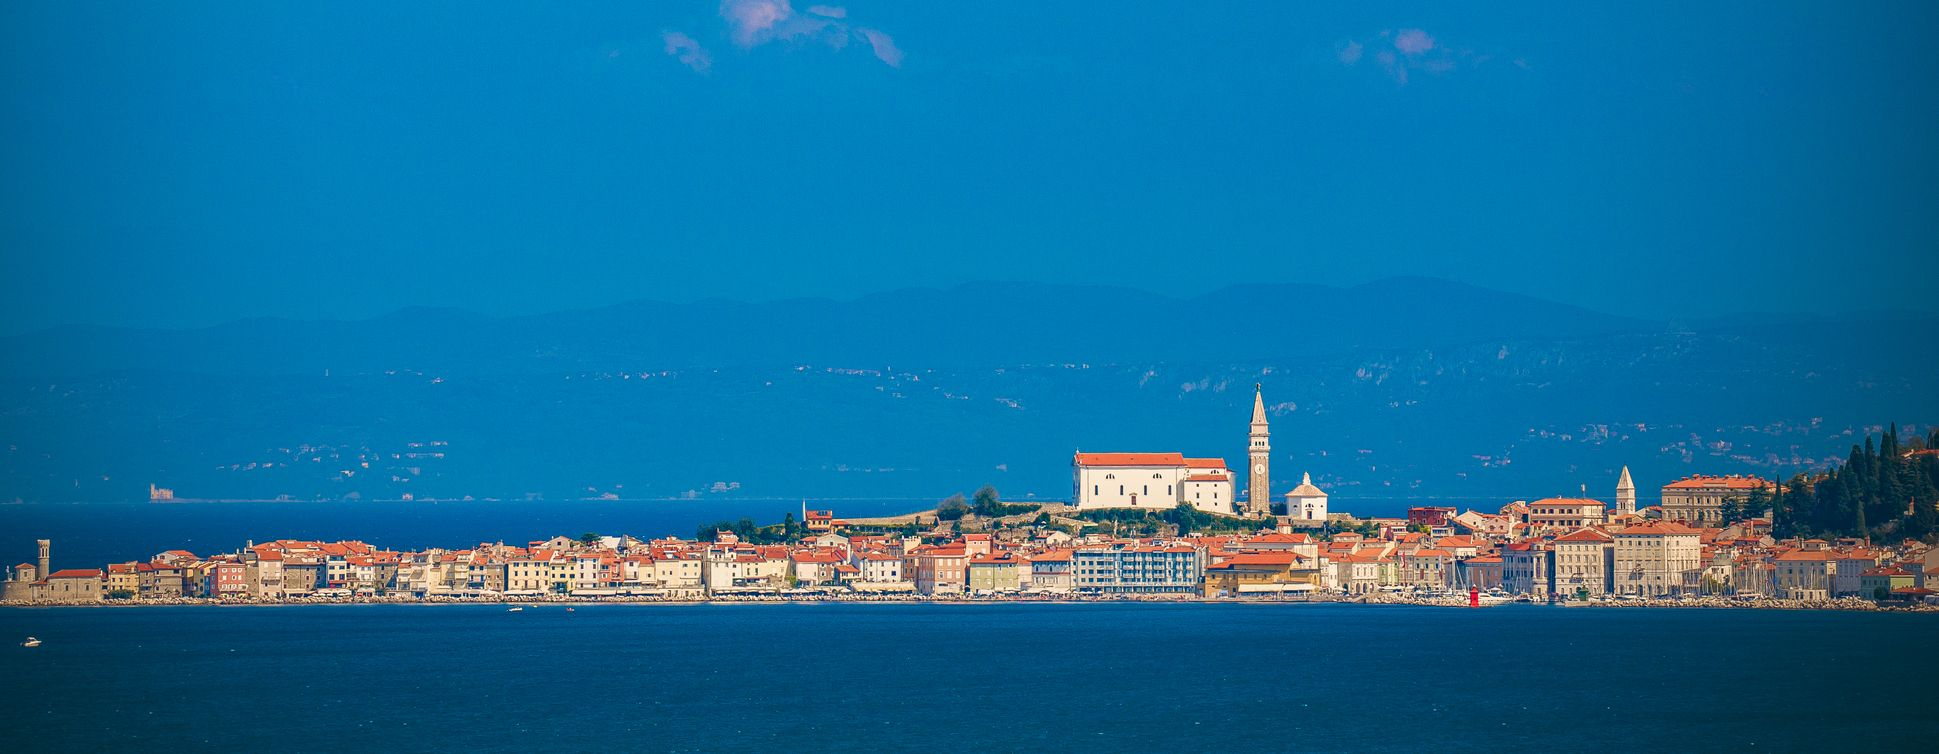 10 Things to See & Do in Umag & Novigrad